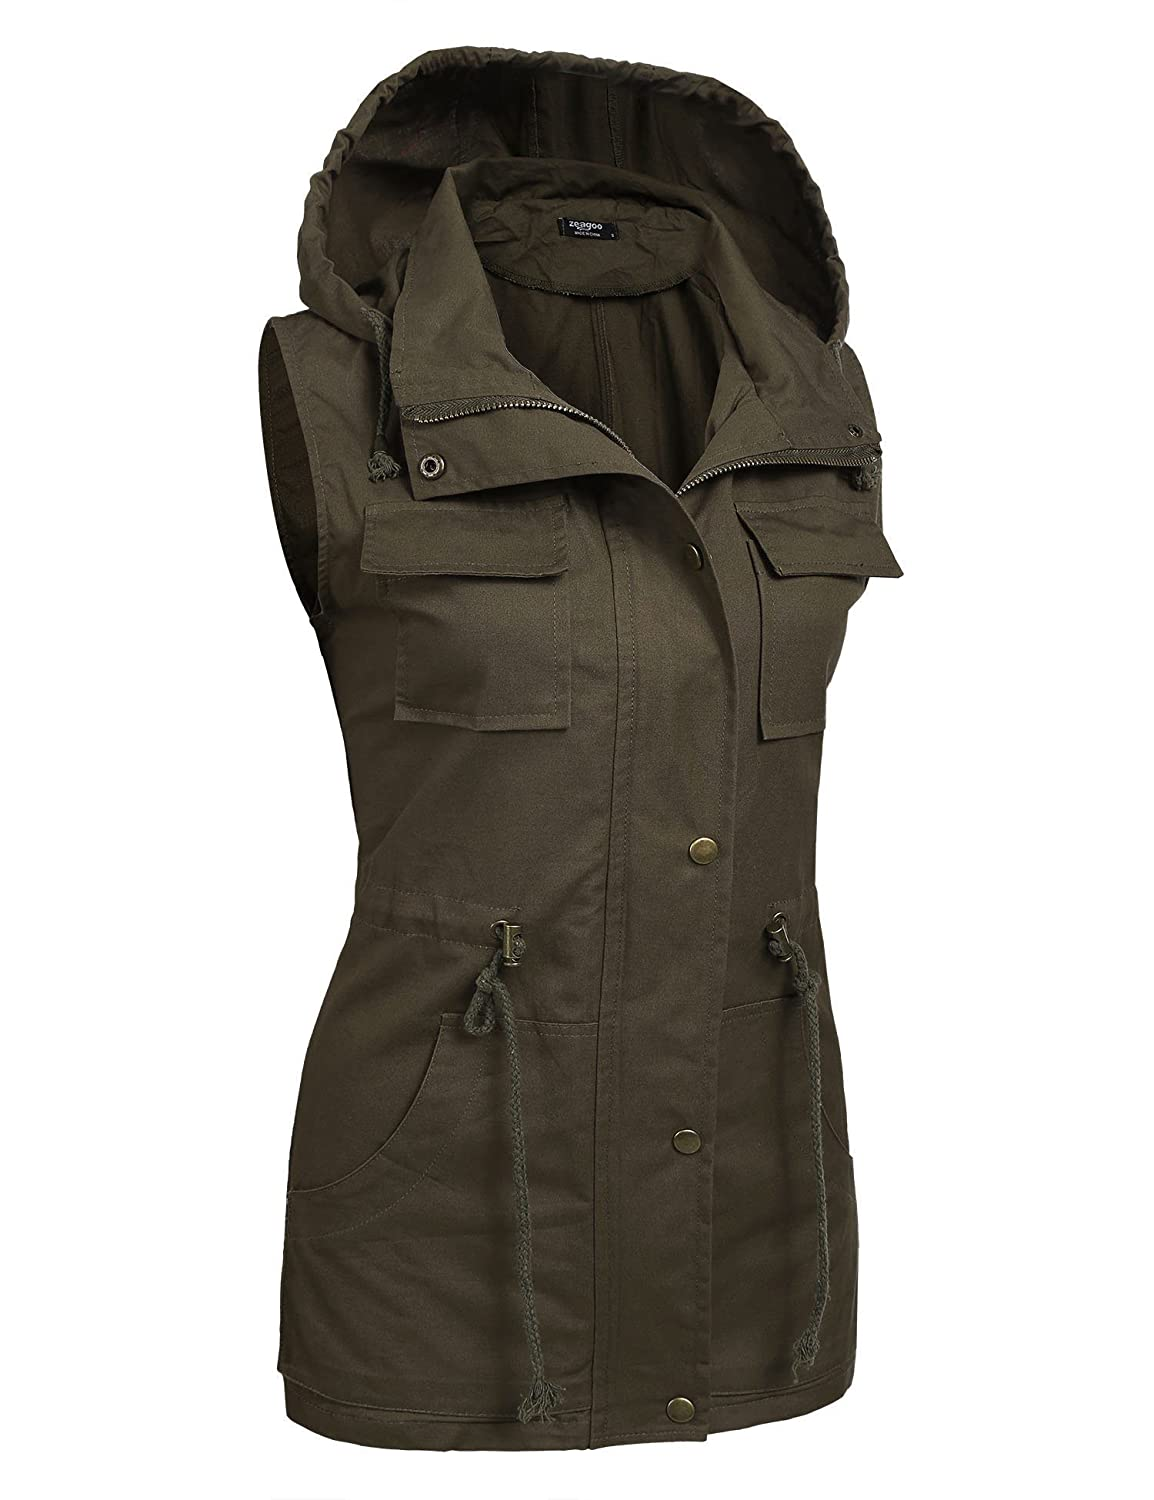 efd9db9636326 Zeagoo Womens Lightweight Sleeveless Military Anorak Vest